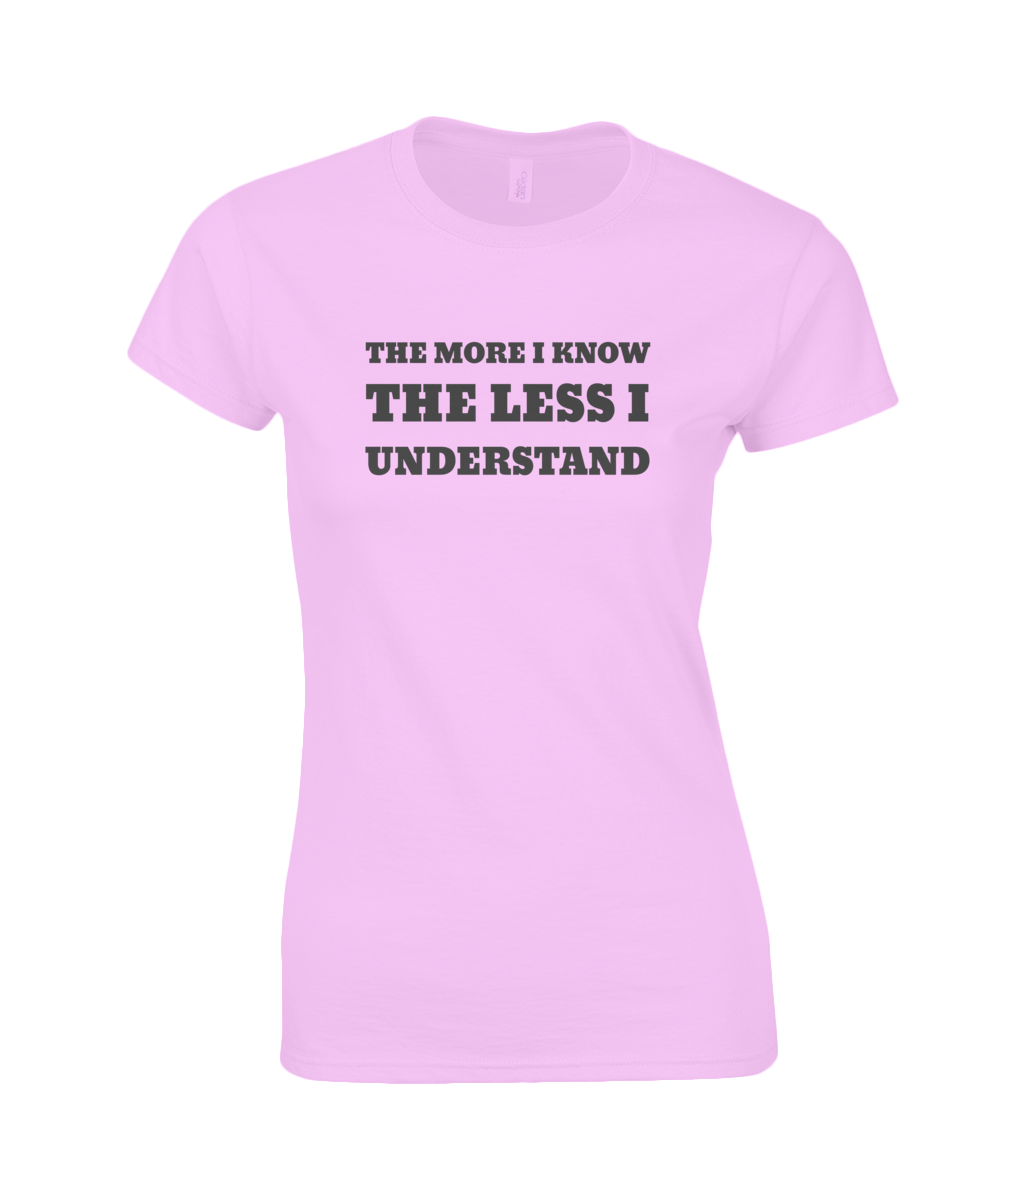 The More I Know The Less I Understand - women's t-shirt